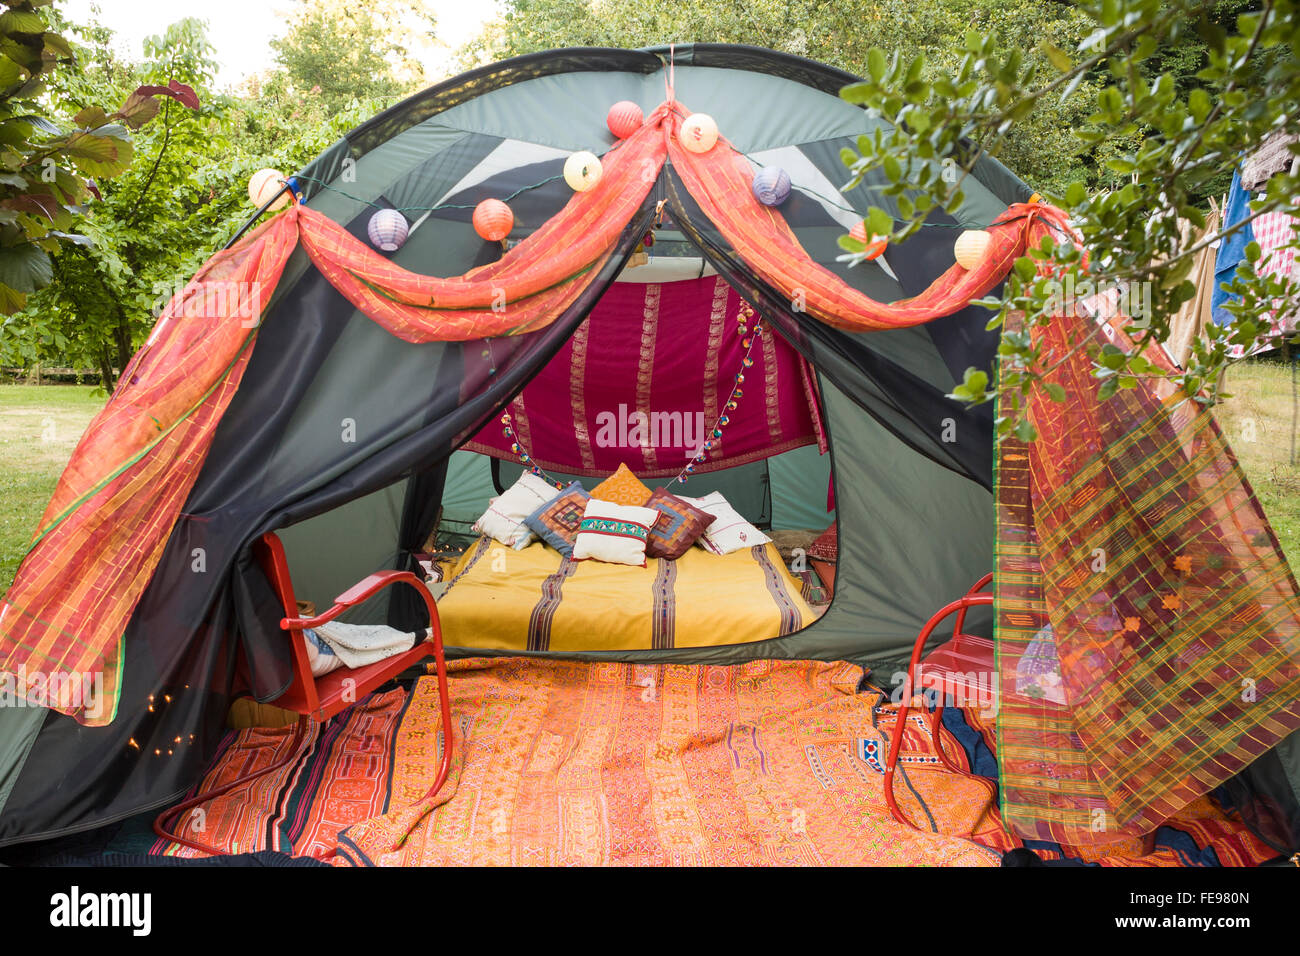 u0027Gl&ingu0027 tent decorated with colorful pillows and blankets. u0027 & Glampingu0027 tent decorated with colorful pillows and blankets Stock ...